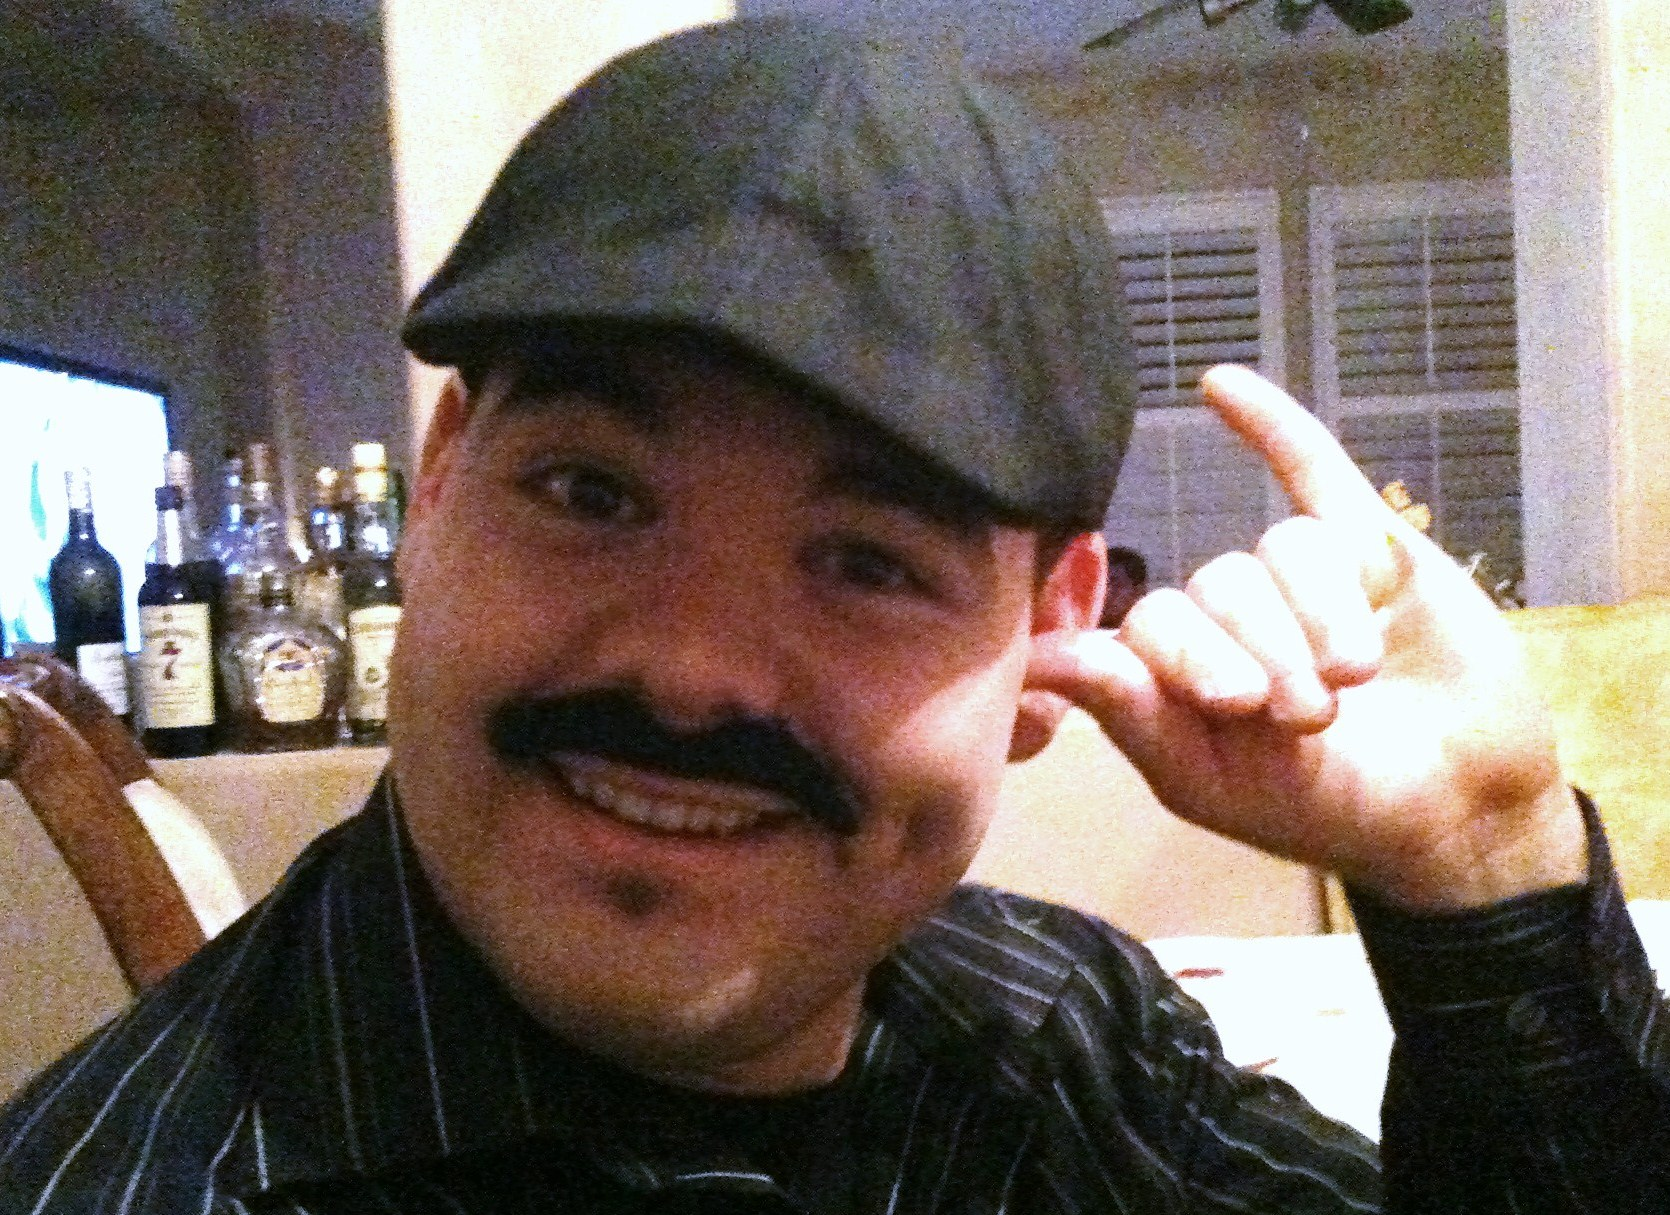 Get that thumb out of your ear, so you can hear all of the compliments on that bitchin' 'Stache!